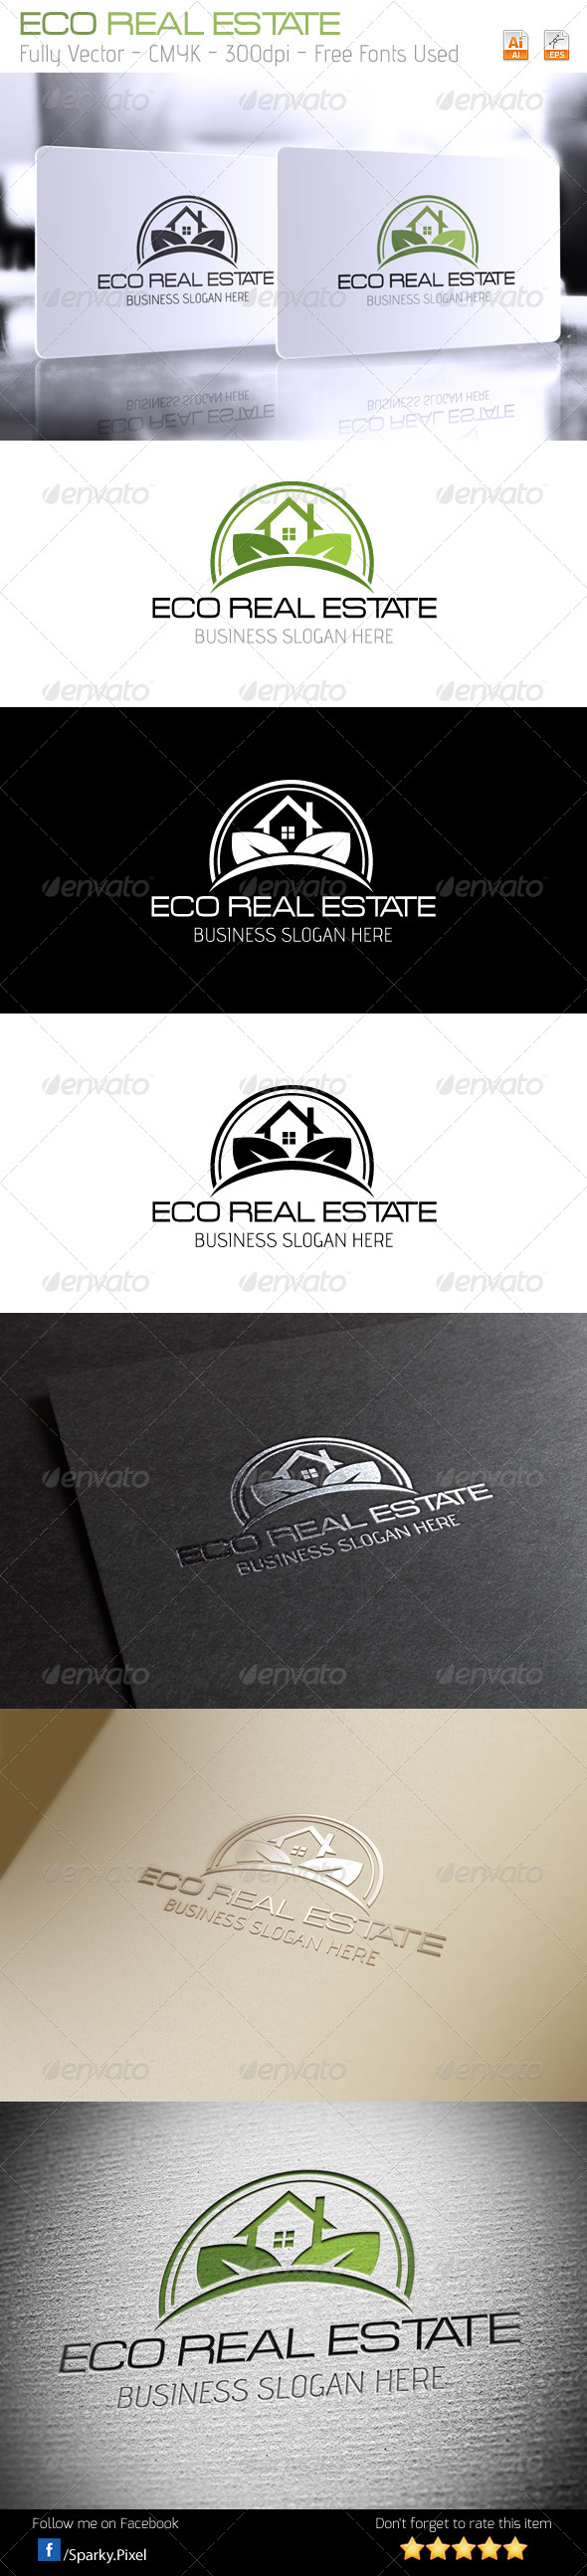 GraphicRiver Eco Real Estate Logo 6306258